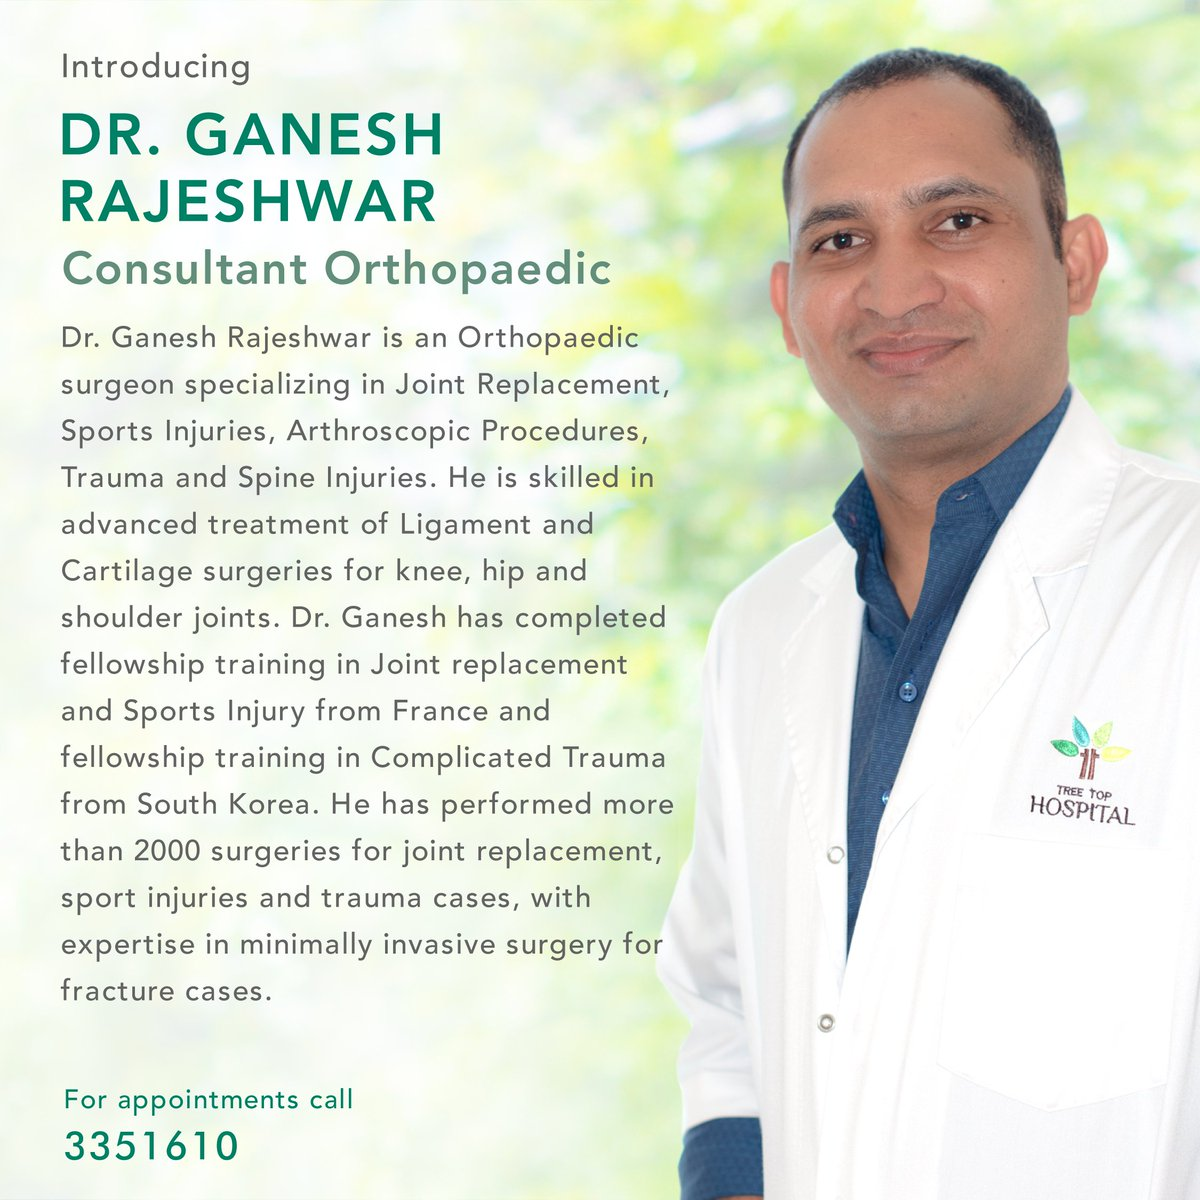 Introducing Dr. Ganesh Rajeshwar, Consultant Orthopaedic. (ޑރ. ގަނޭޝް ރާޖޭޝްވަރު- ކަށީގެ ޚާއްސަ)  Learn more: http://bit.ly/2v119AZ   For more information call 3351610. #treetophospital #tth #treetop #maldives #health #wellness #healthcare #excellenceinhealthcare #orthopaedicspic.twitter.com/MWRLZ7jG4b